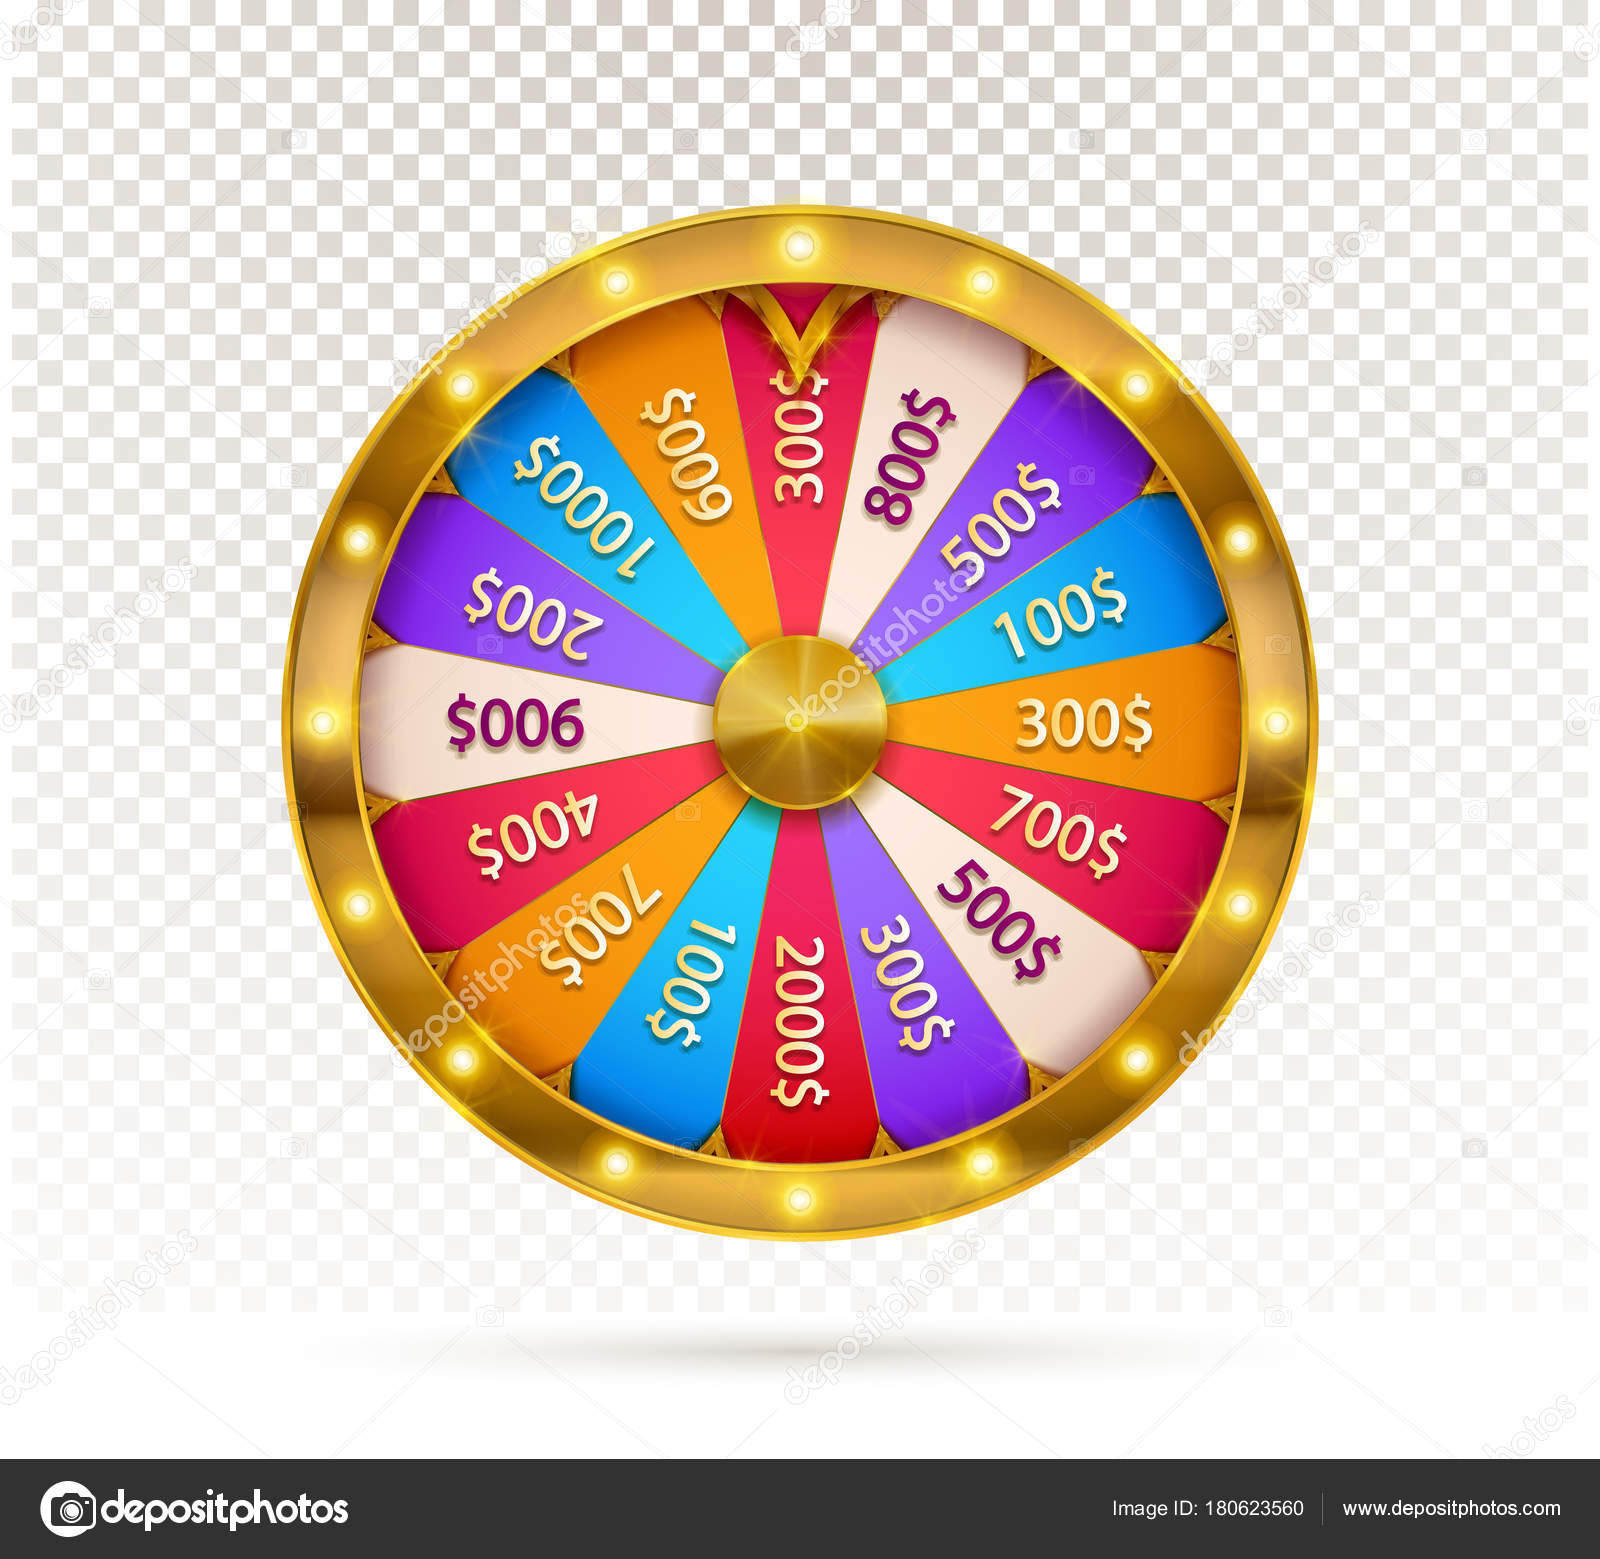 Fortune Roulette - The Thrills of Online Roulette